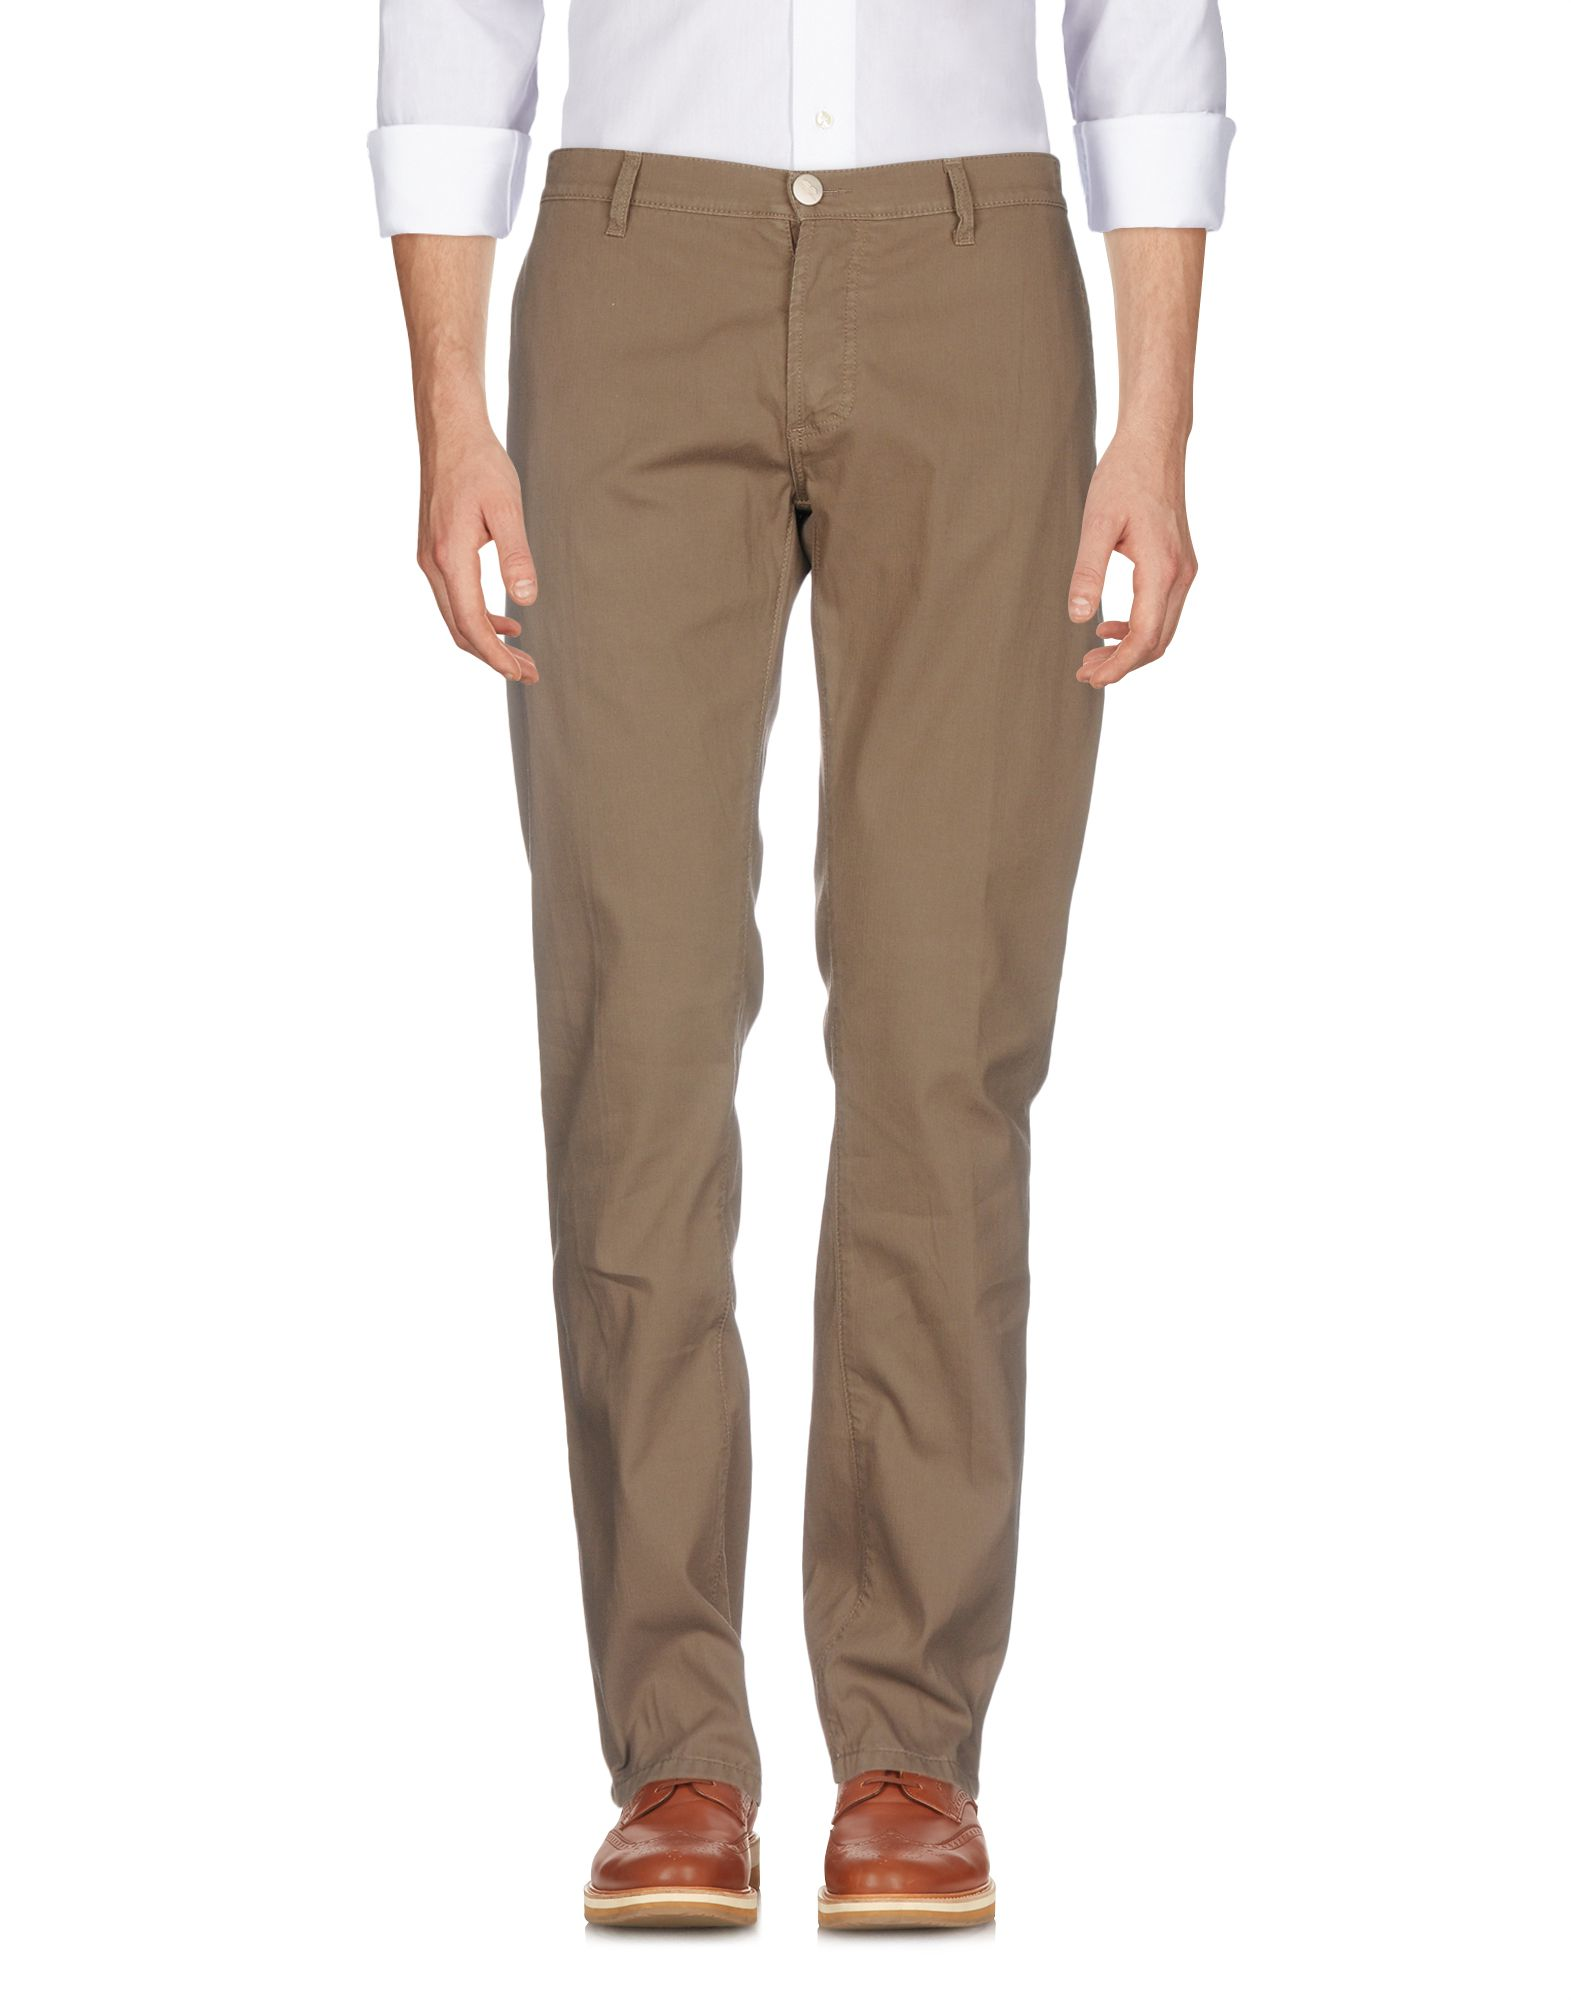 CESARE ATTOLINI Casual Pants in Khaki